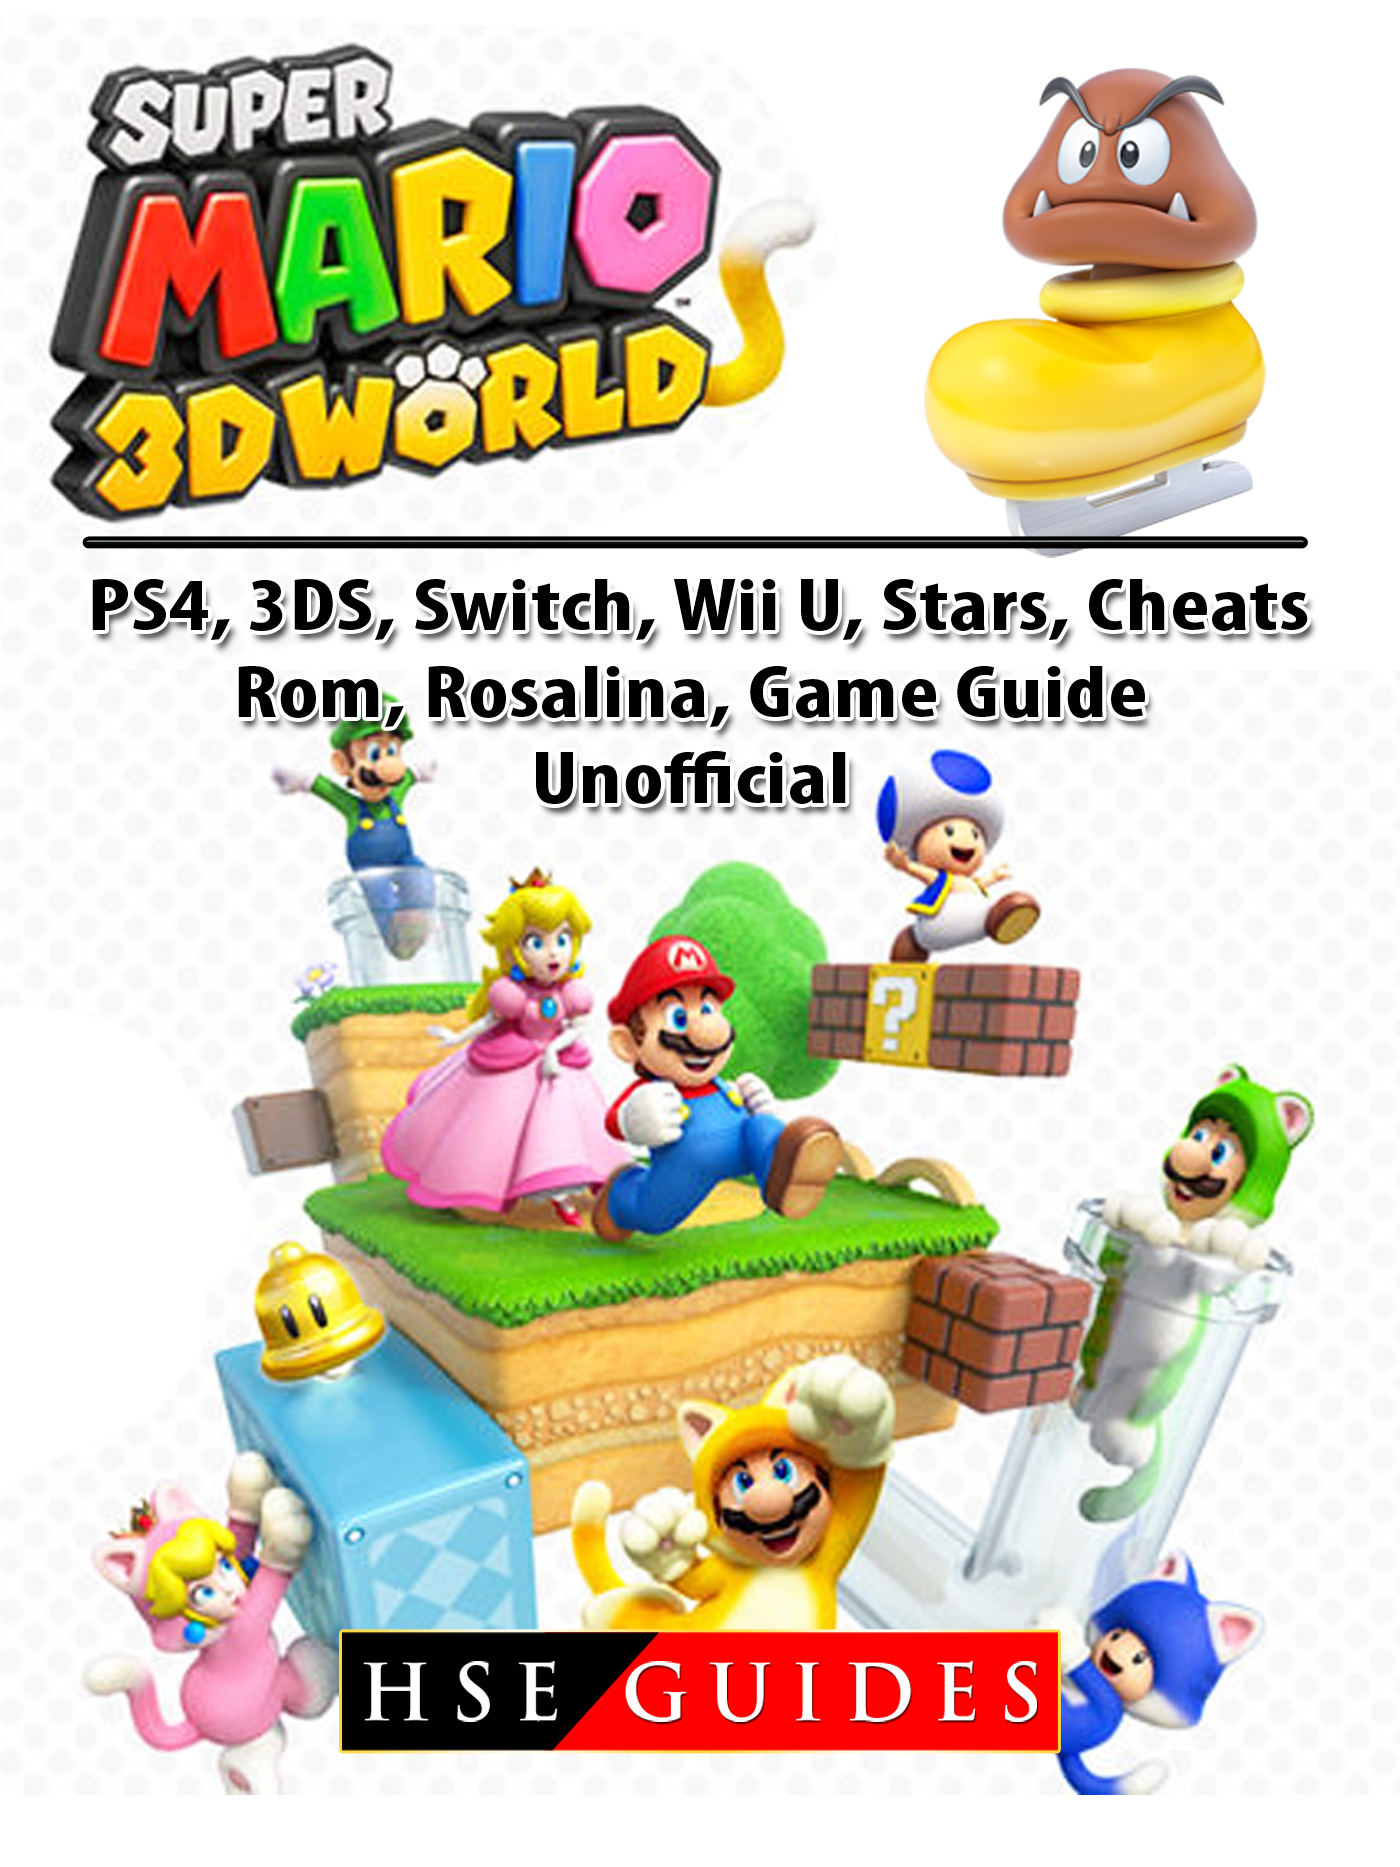 Super Mario 3D World, PS4, 3DS, Switch, Wii U, Stars, Cheats, Rom, Rosalina, Game Guide Unofficial